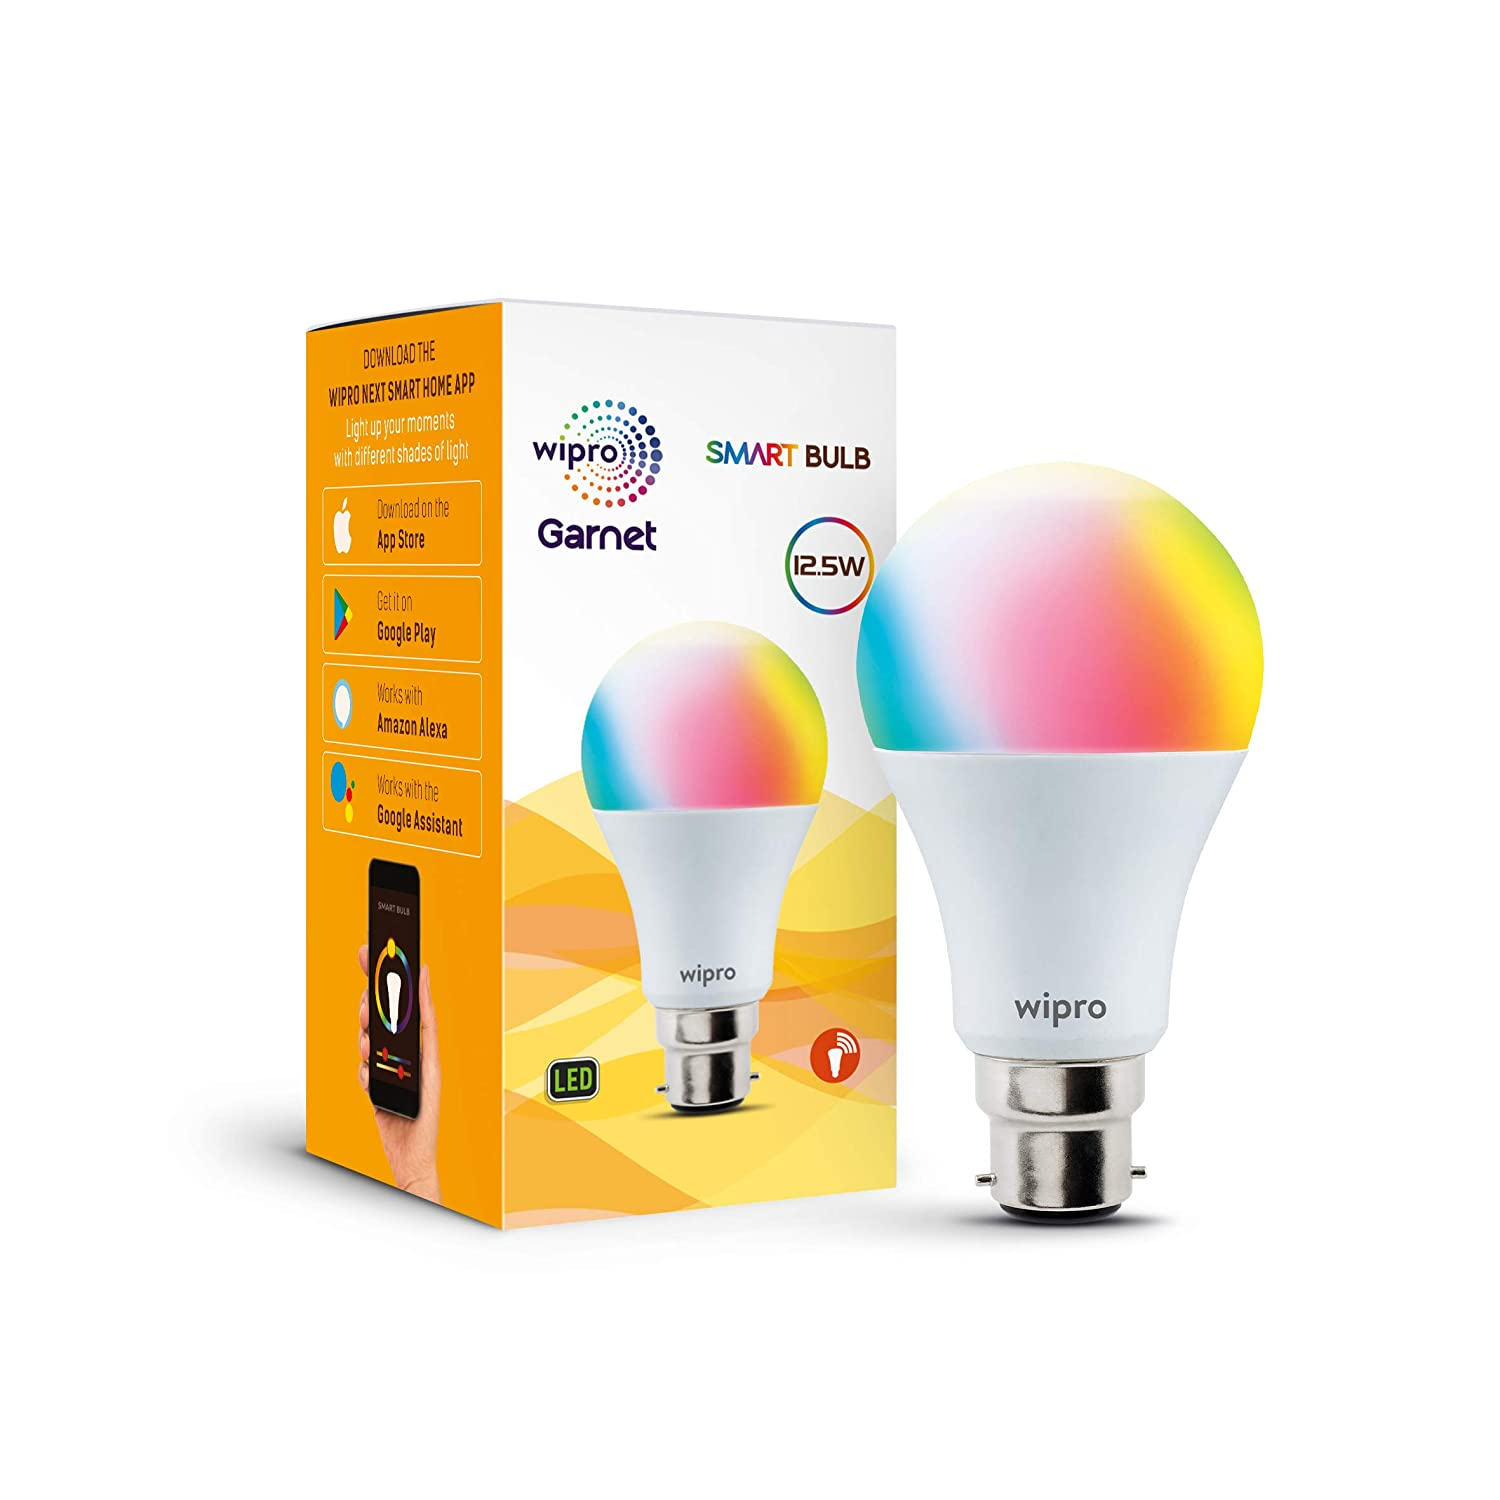 wipro WiFi Enabled Smart LED Bulb B22 12.5-Watt (16 Million Colors + Warm White/Neutral White/White) (Compatible with Amazon Alexa and Google Assistant)